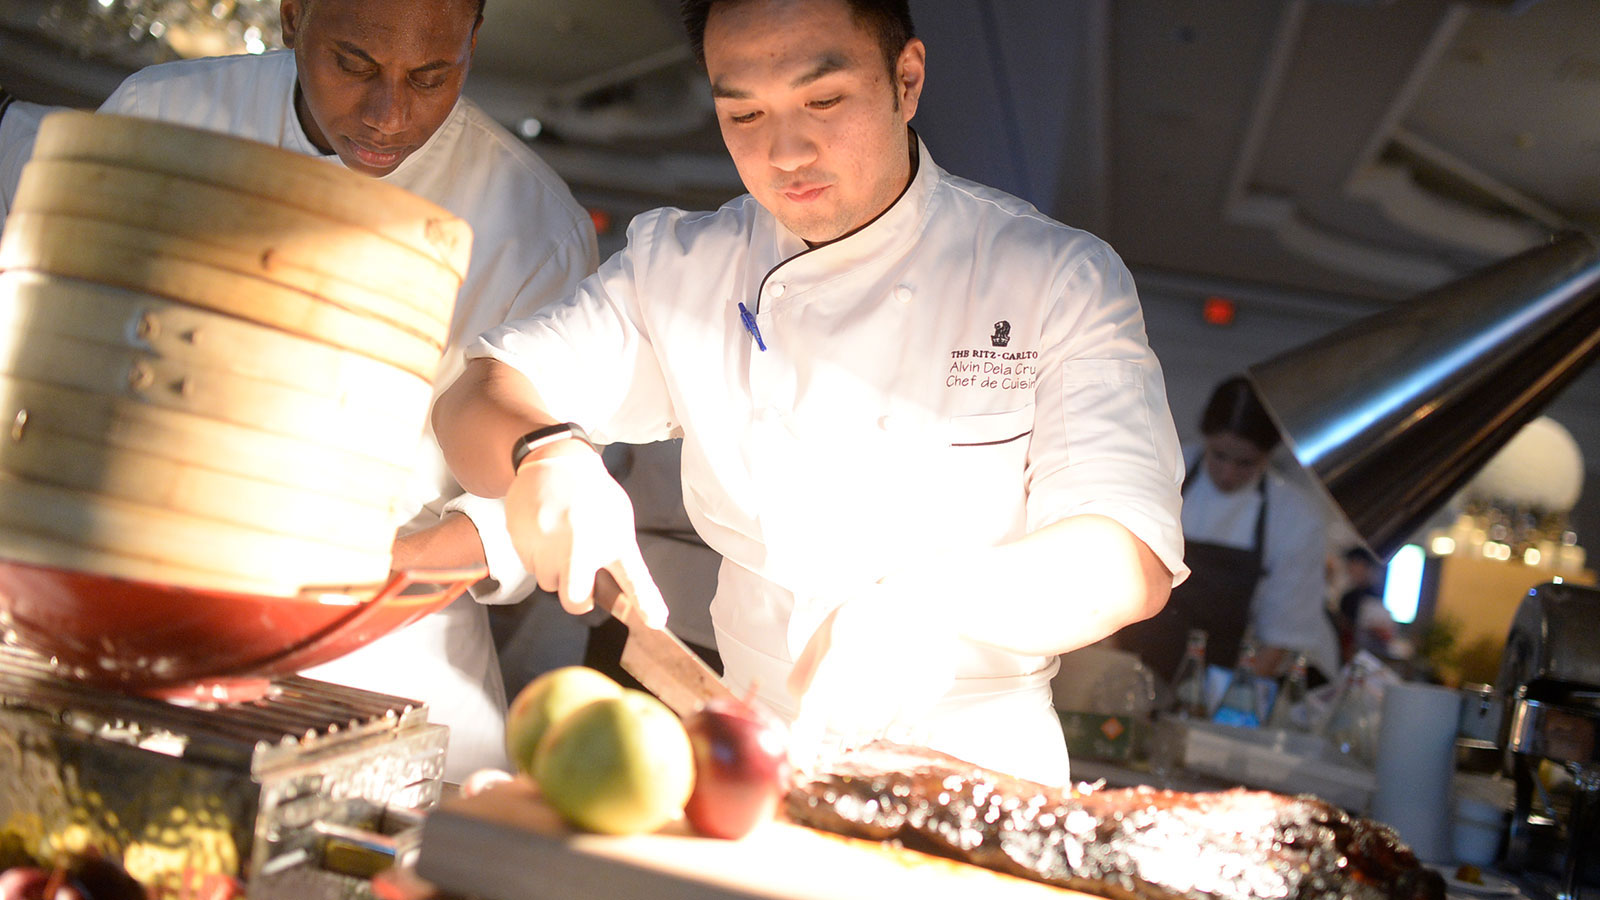 Human Rights Campaign Foundation's Sixth Annual Chefs for Equality